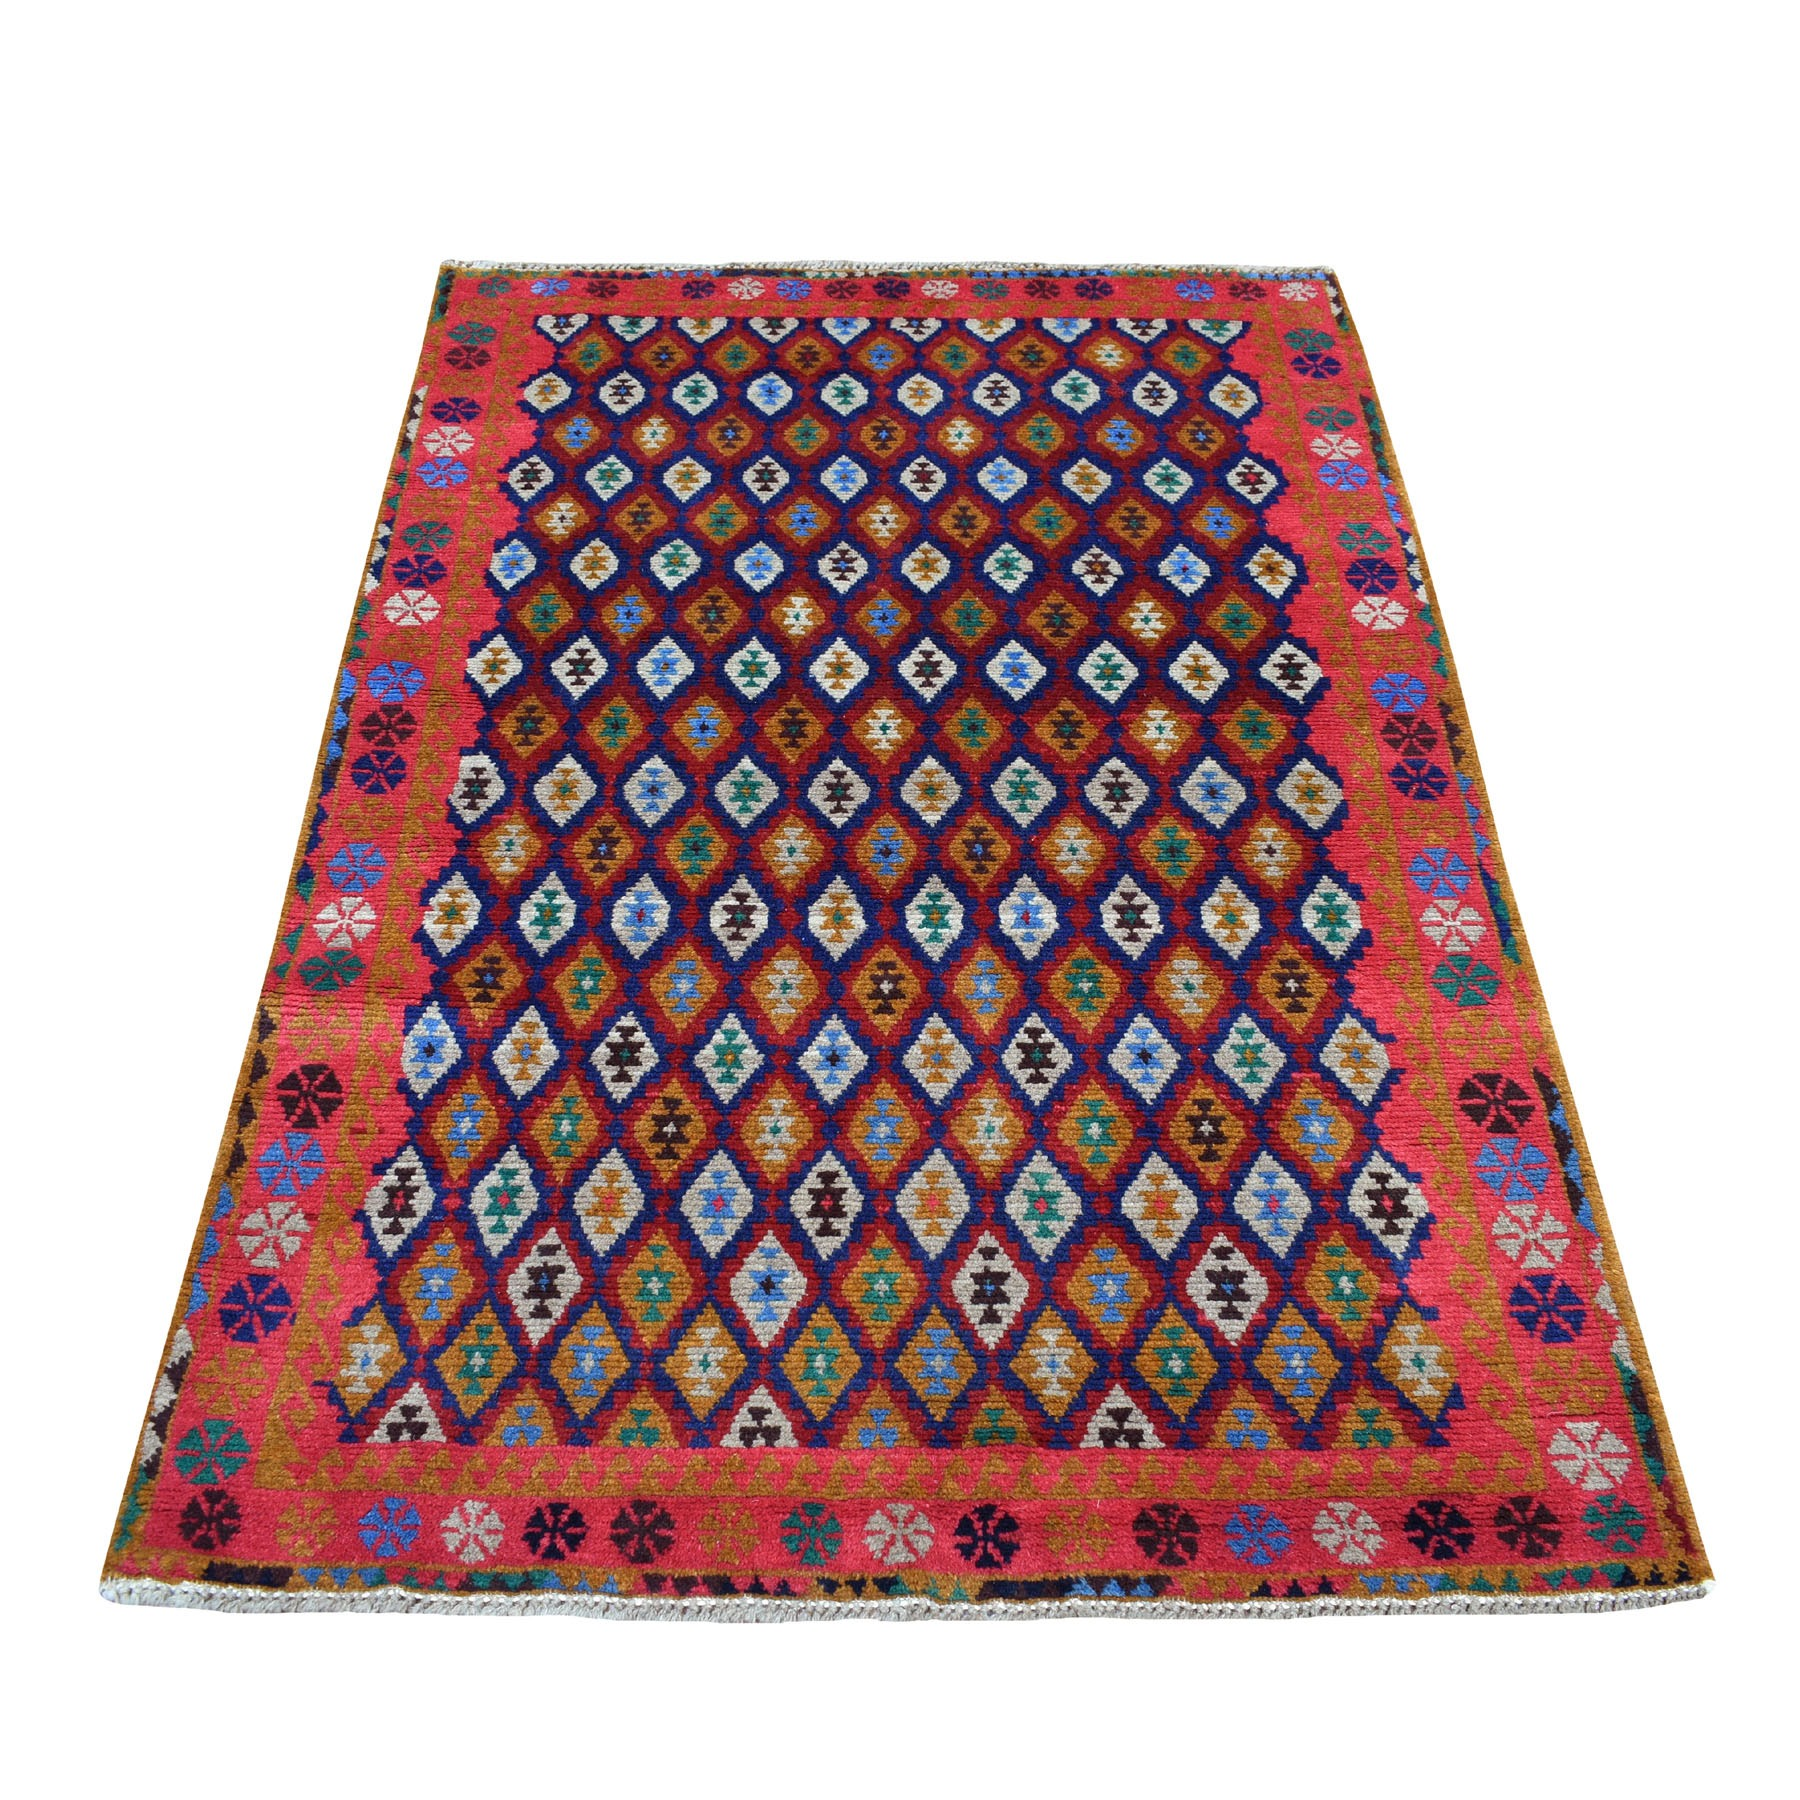 "4'x6'1"" Blue All Over Design Colorful Afghan Baluch Hand Knotted Pure Wool Oriental Rug"